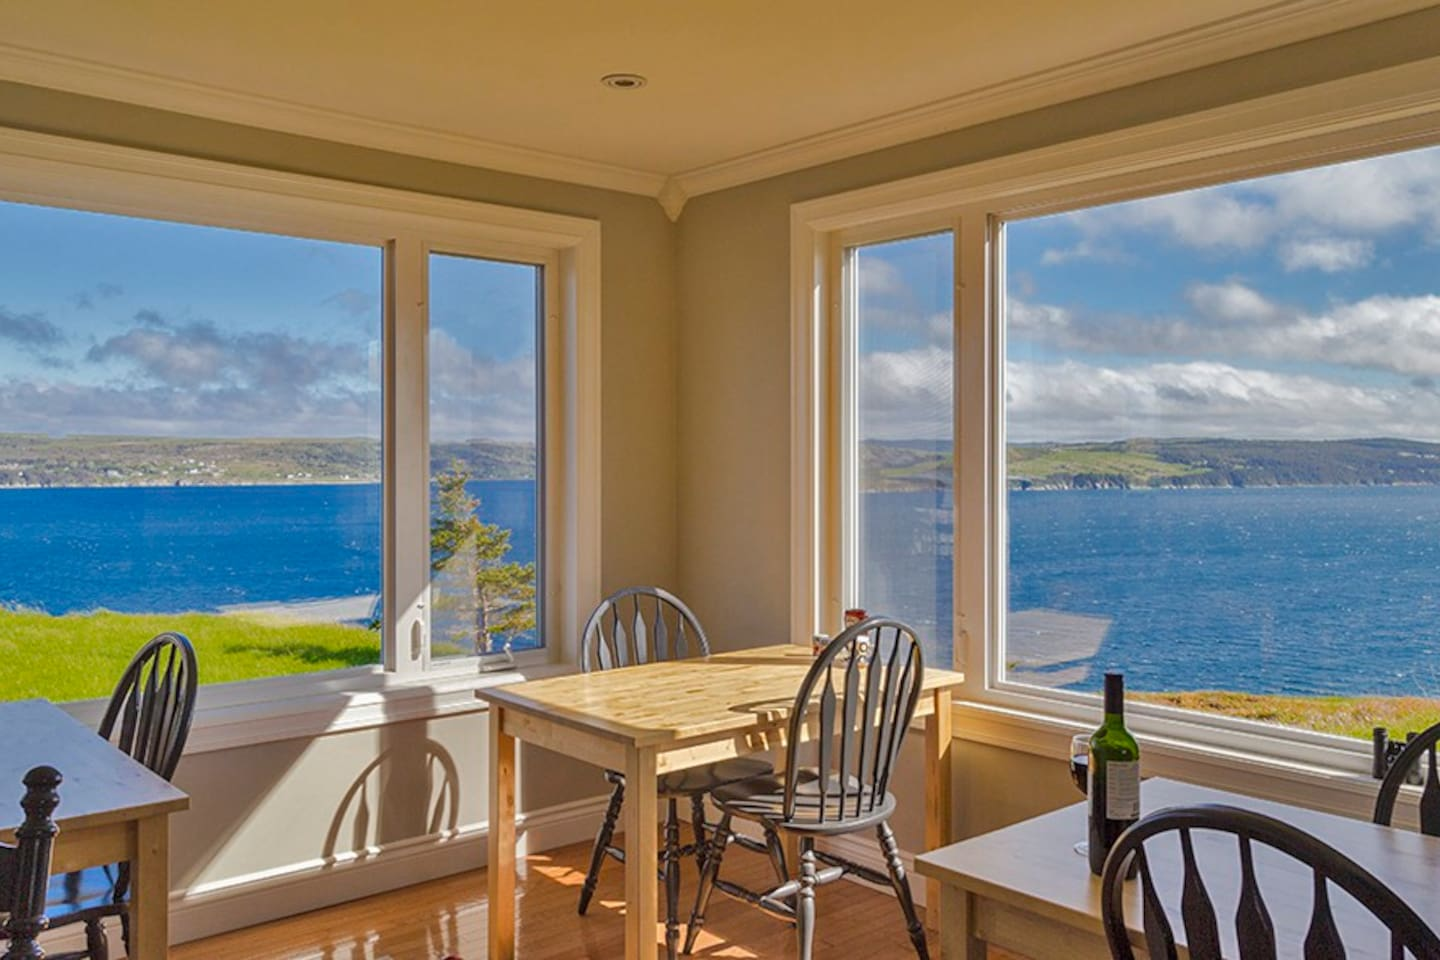 View from the dining room at The Bayside Bed and Breakfast